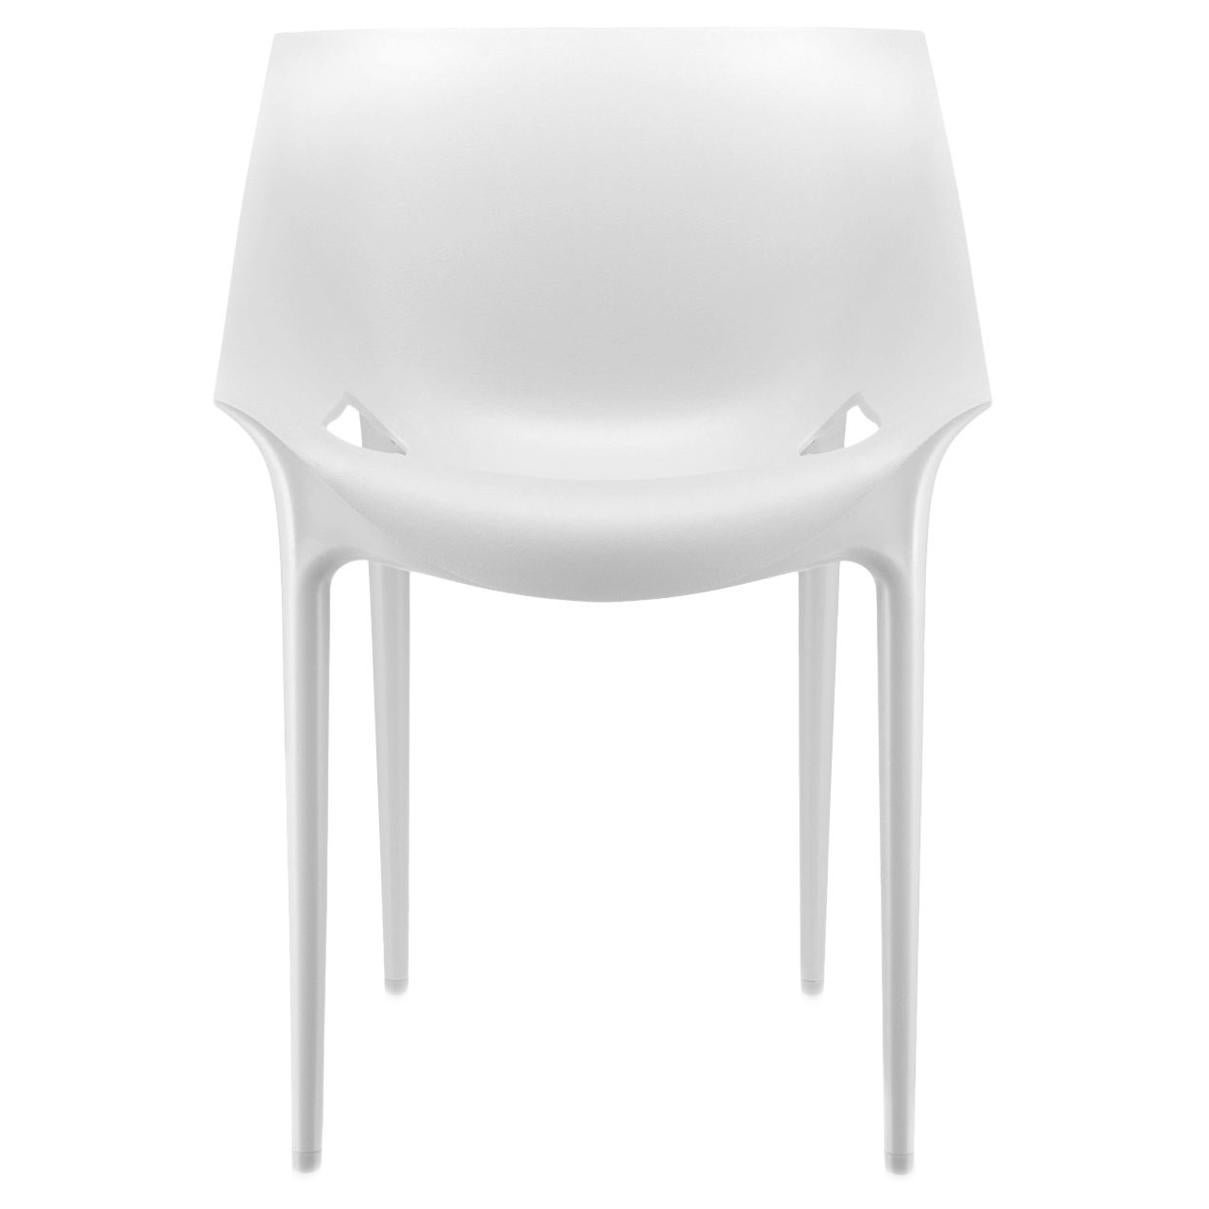 Set of 2 Kartell Dr. Yes Chairs in White by Philippe Starck & Eugeni Quitllet